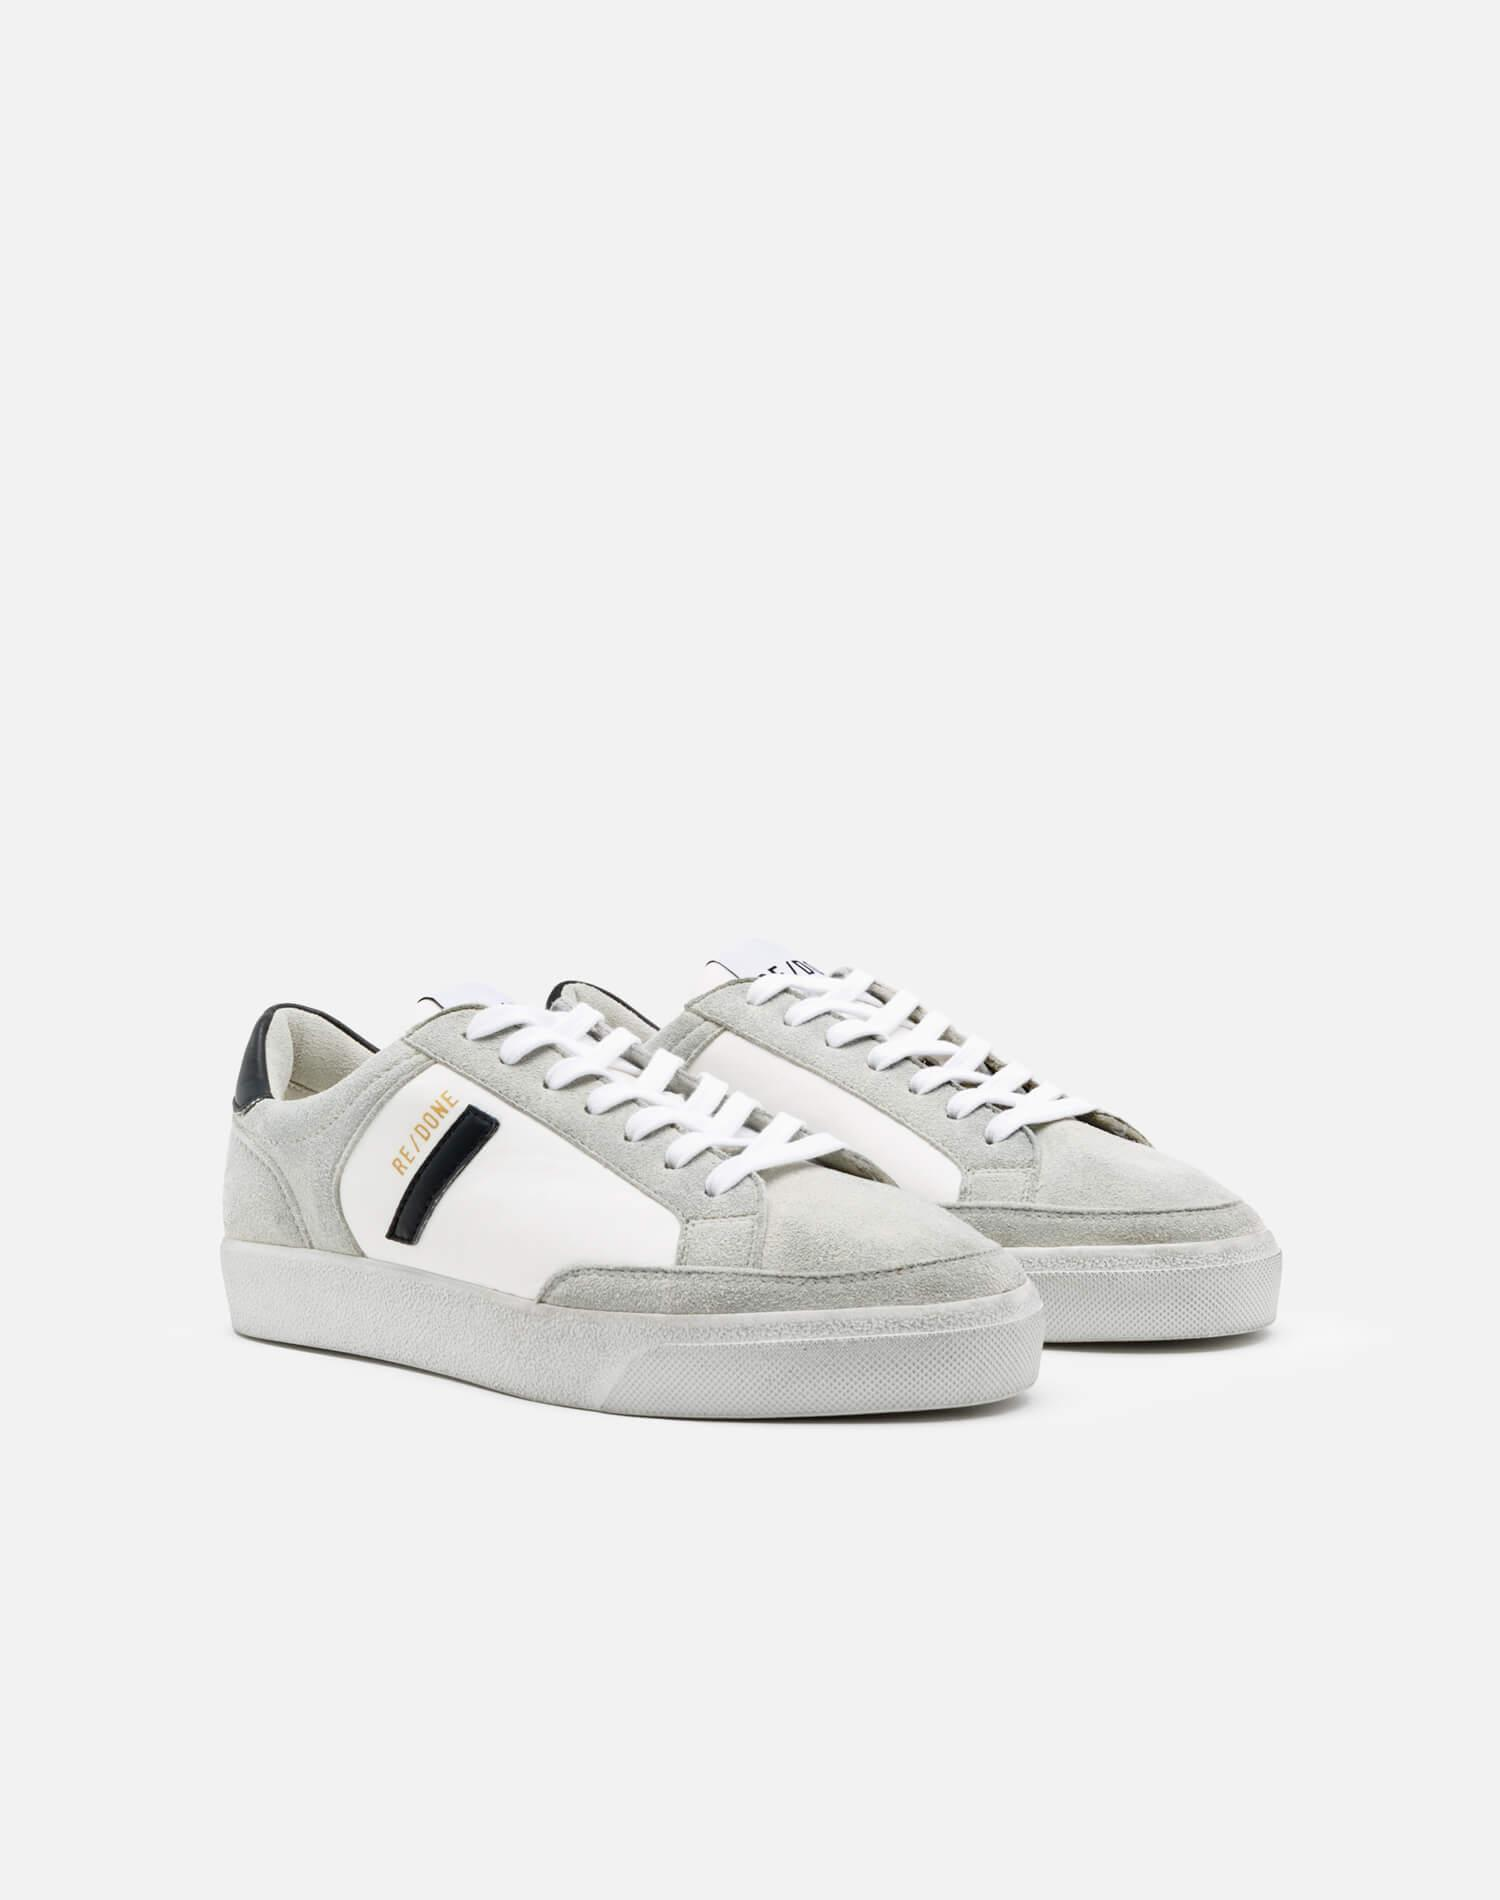 90s Sustainable Skate Shoe - White and Black 1